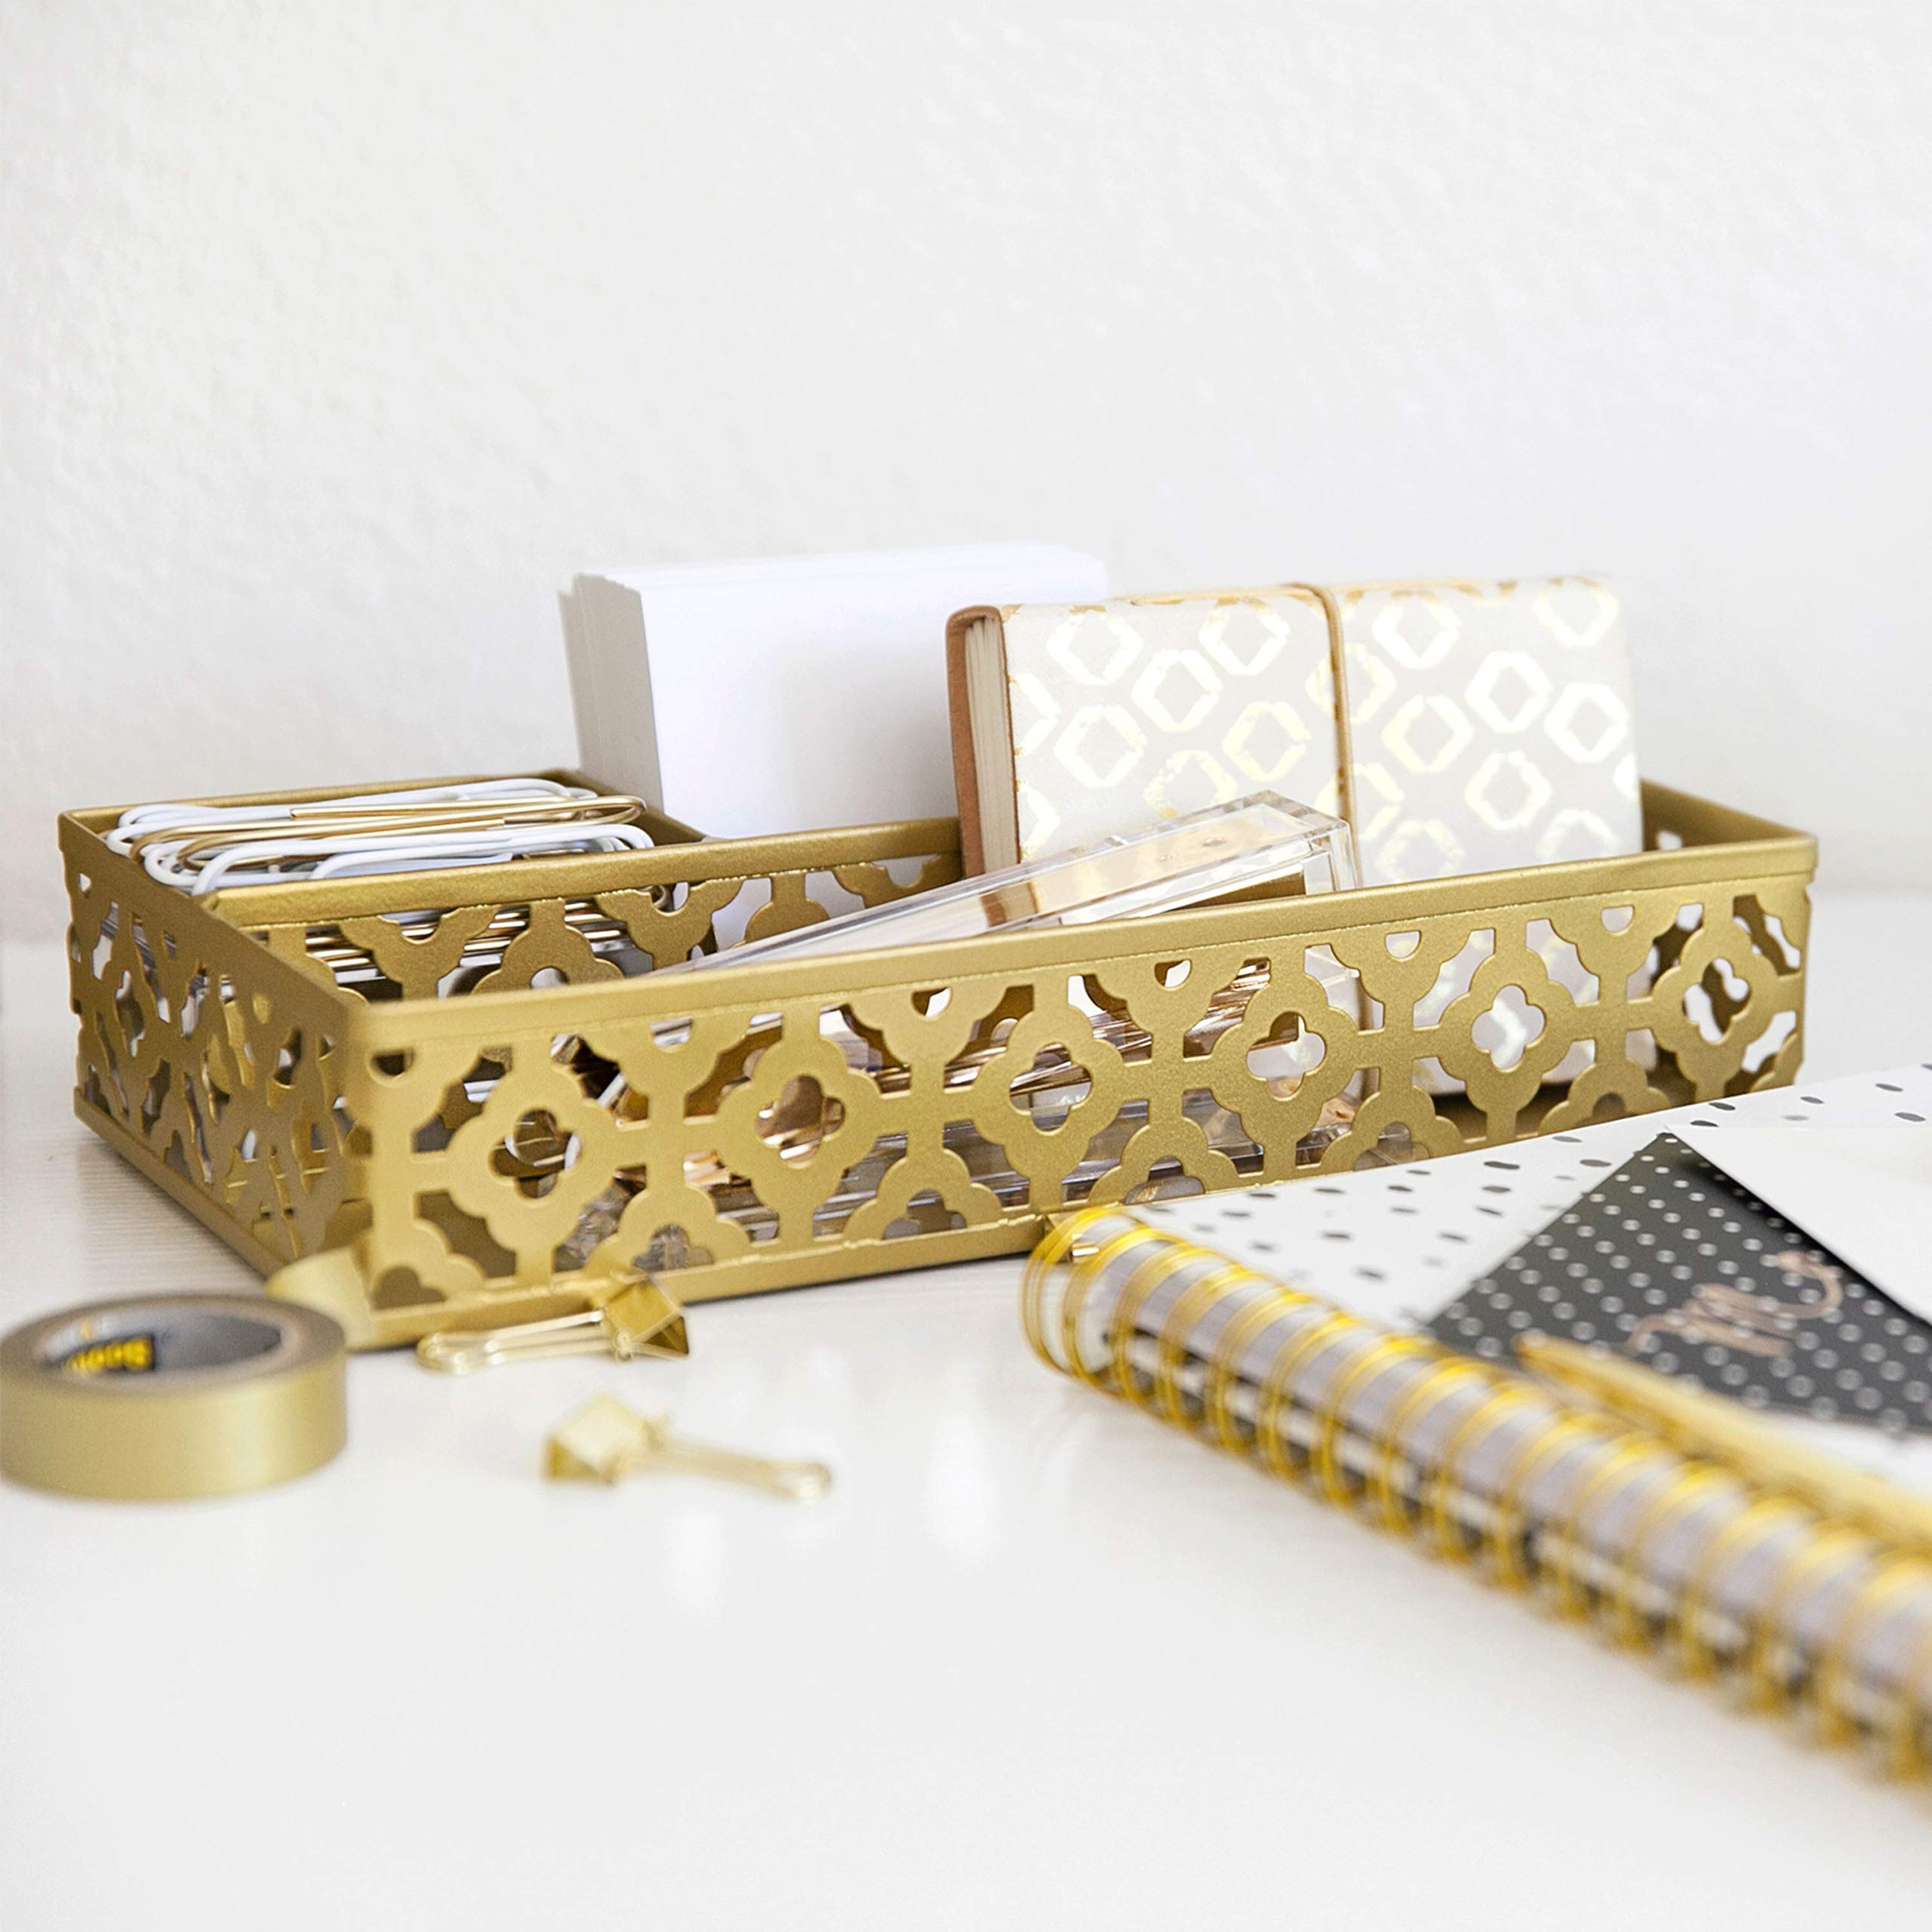 Blu Monaco Gold Desk Organizer for Women - 3 Piece Desk Accessories Set - Pen Cup, Magazine-File-Mail Holder, and Accessories Tray - Antique Gold Brass Finish Office Supplies Stationery Decor by Blu Monaco (Image #4)